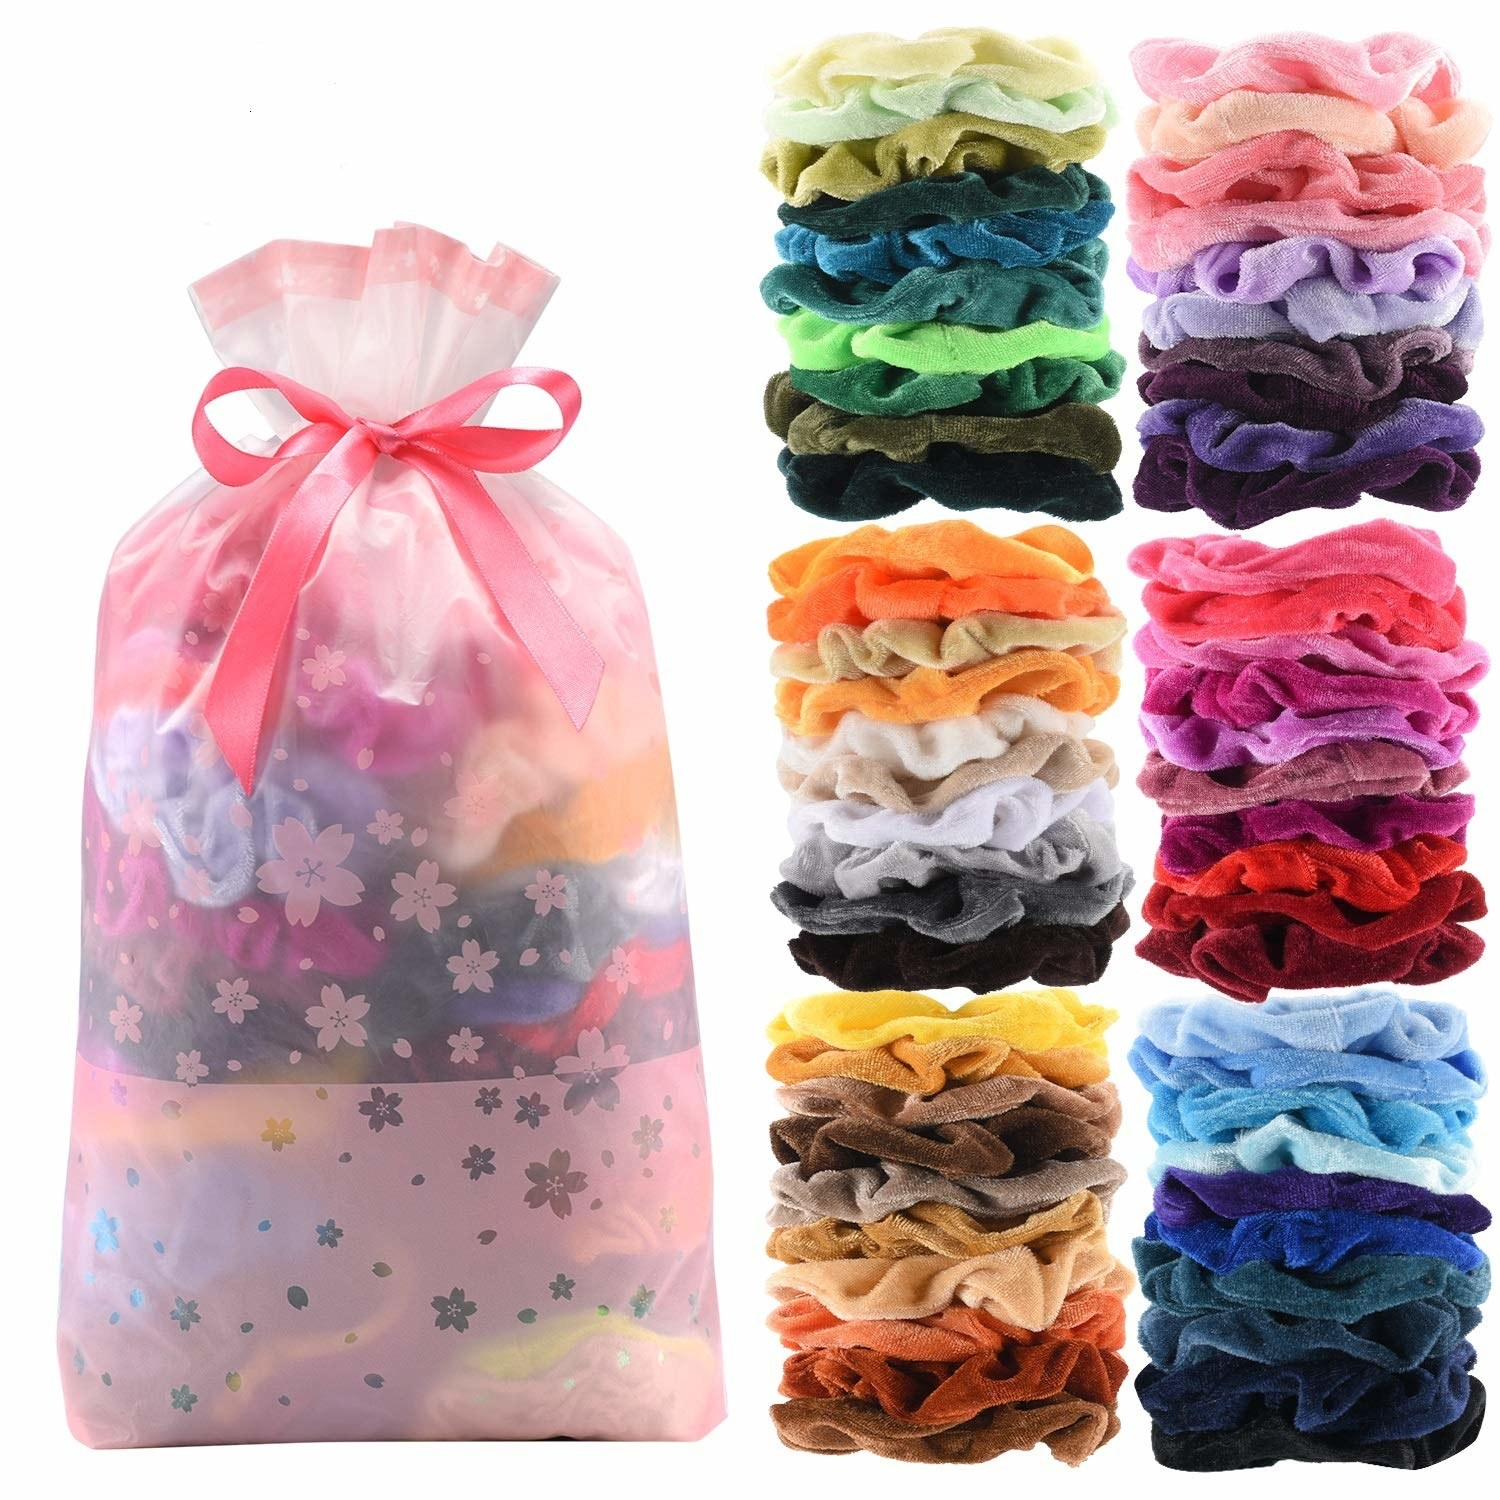 Set of colorful velvet scrunches in a pink floral pouch